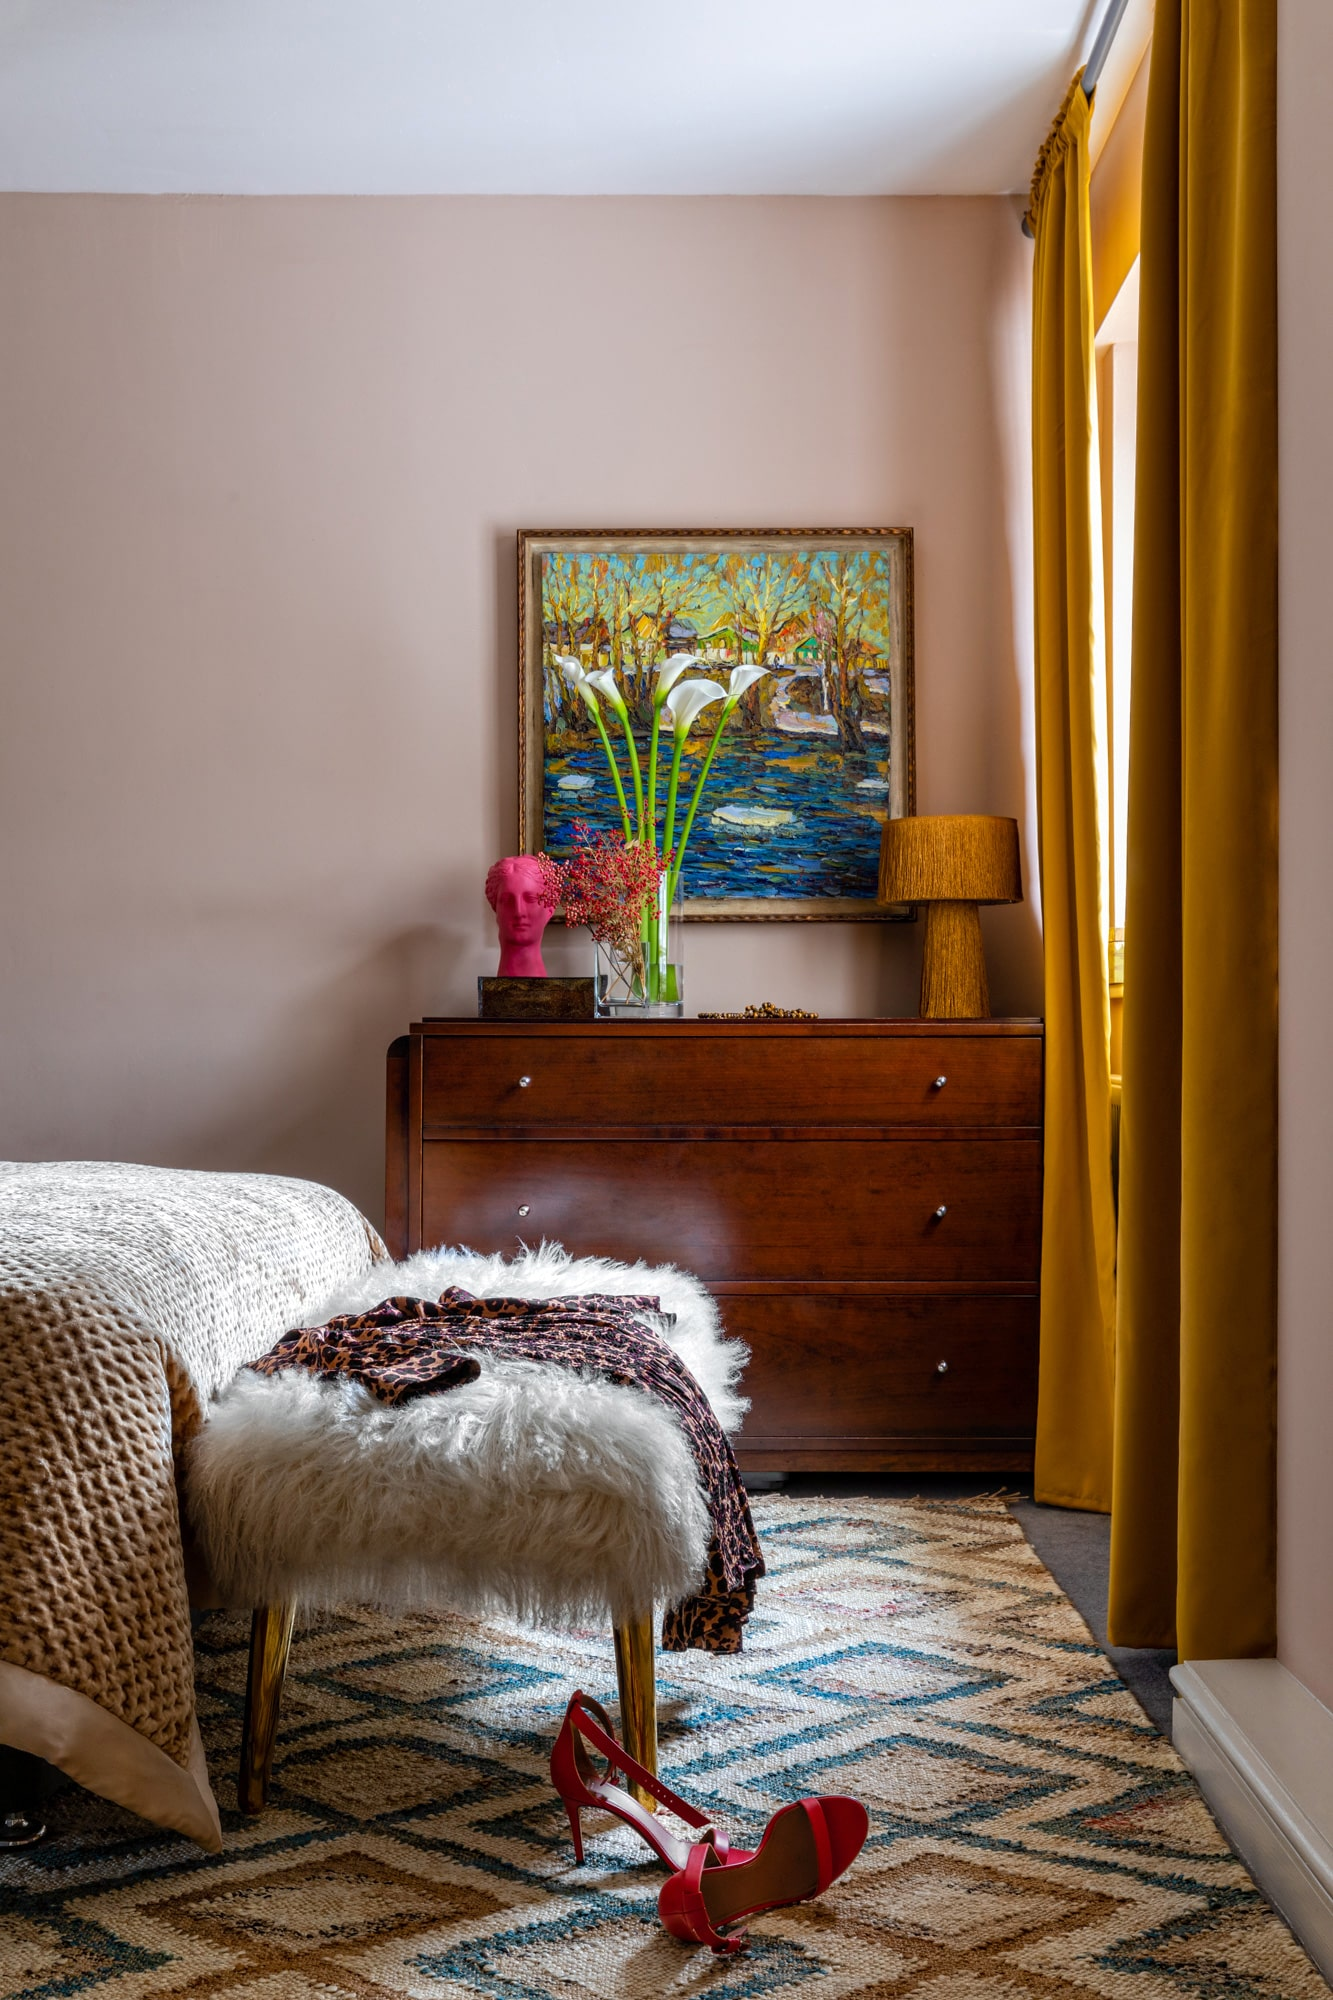 Interior photo: bedroom with salmon walls, yellow curtains, chest of drawers, colourful art, women's pink shoes on the floor by the bed